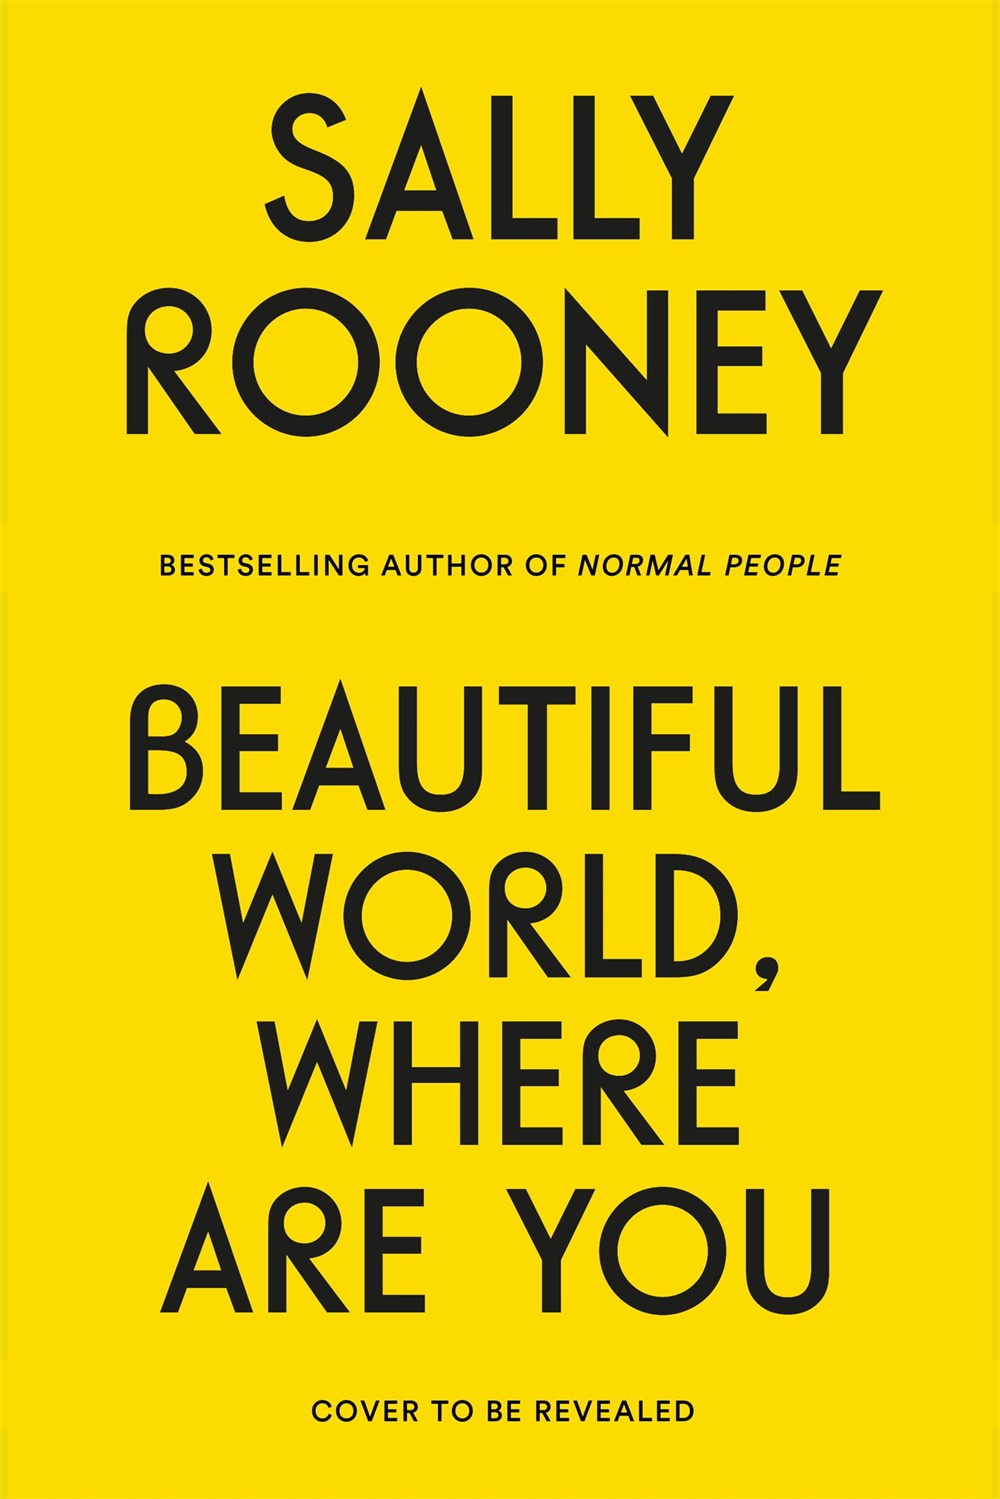 Sally Rooney's 'Beautiful World, Where Are You' Coming This Fall | Book Pulse